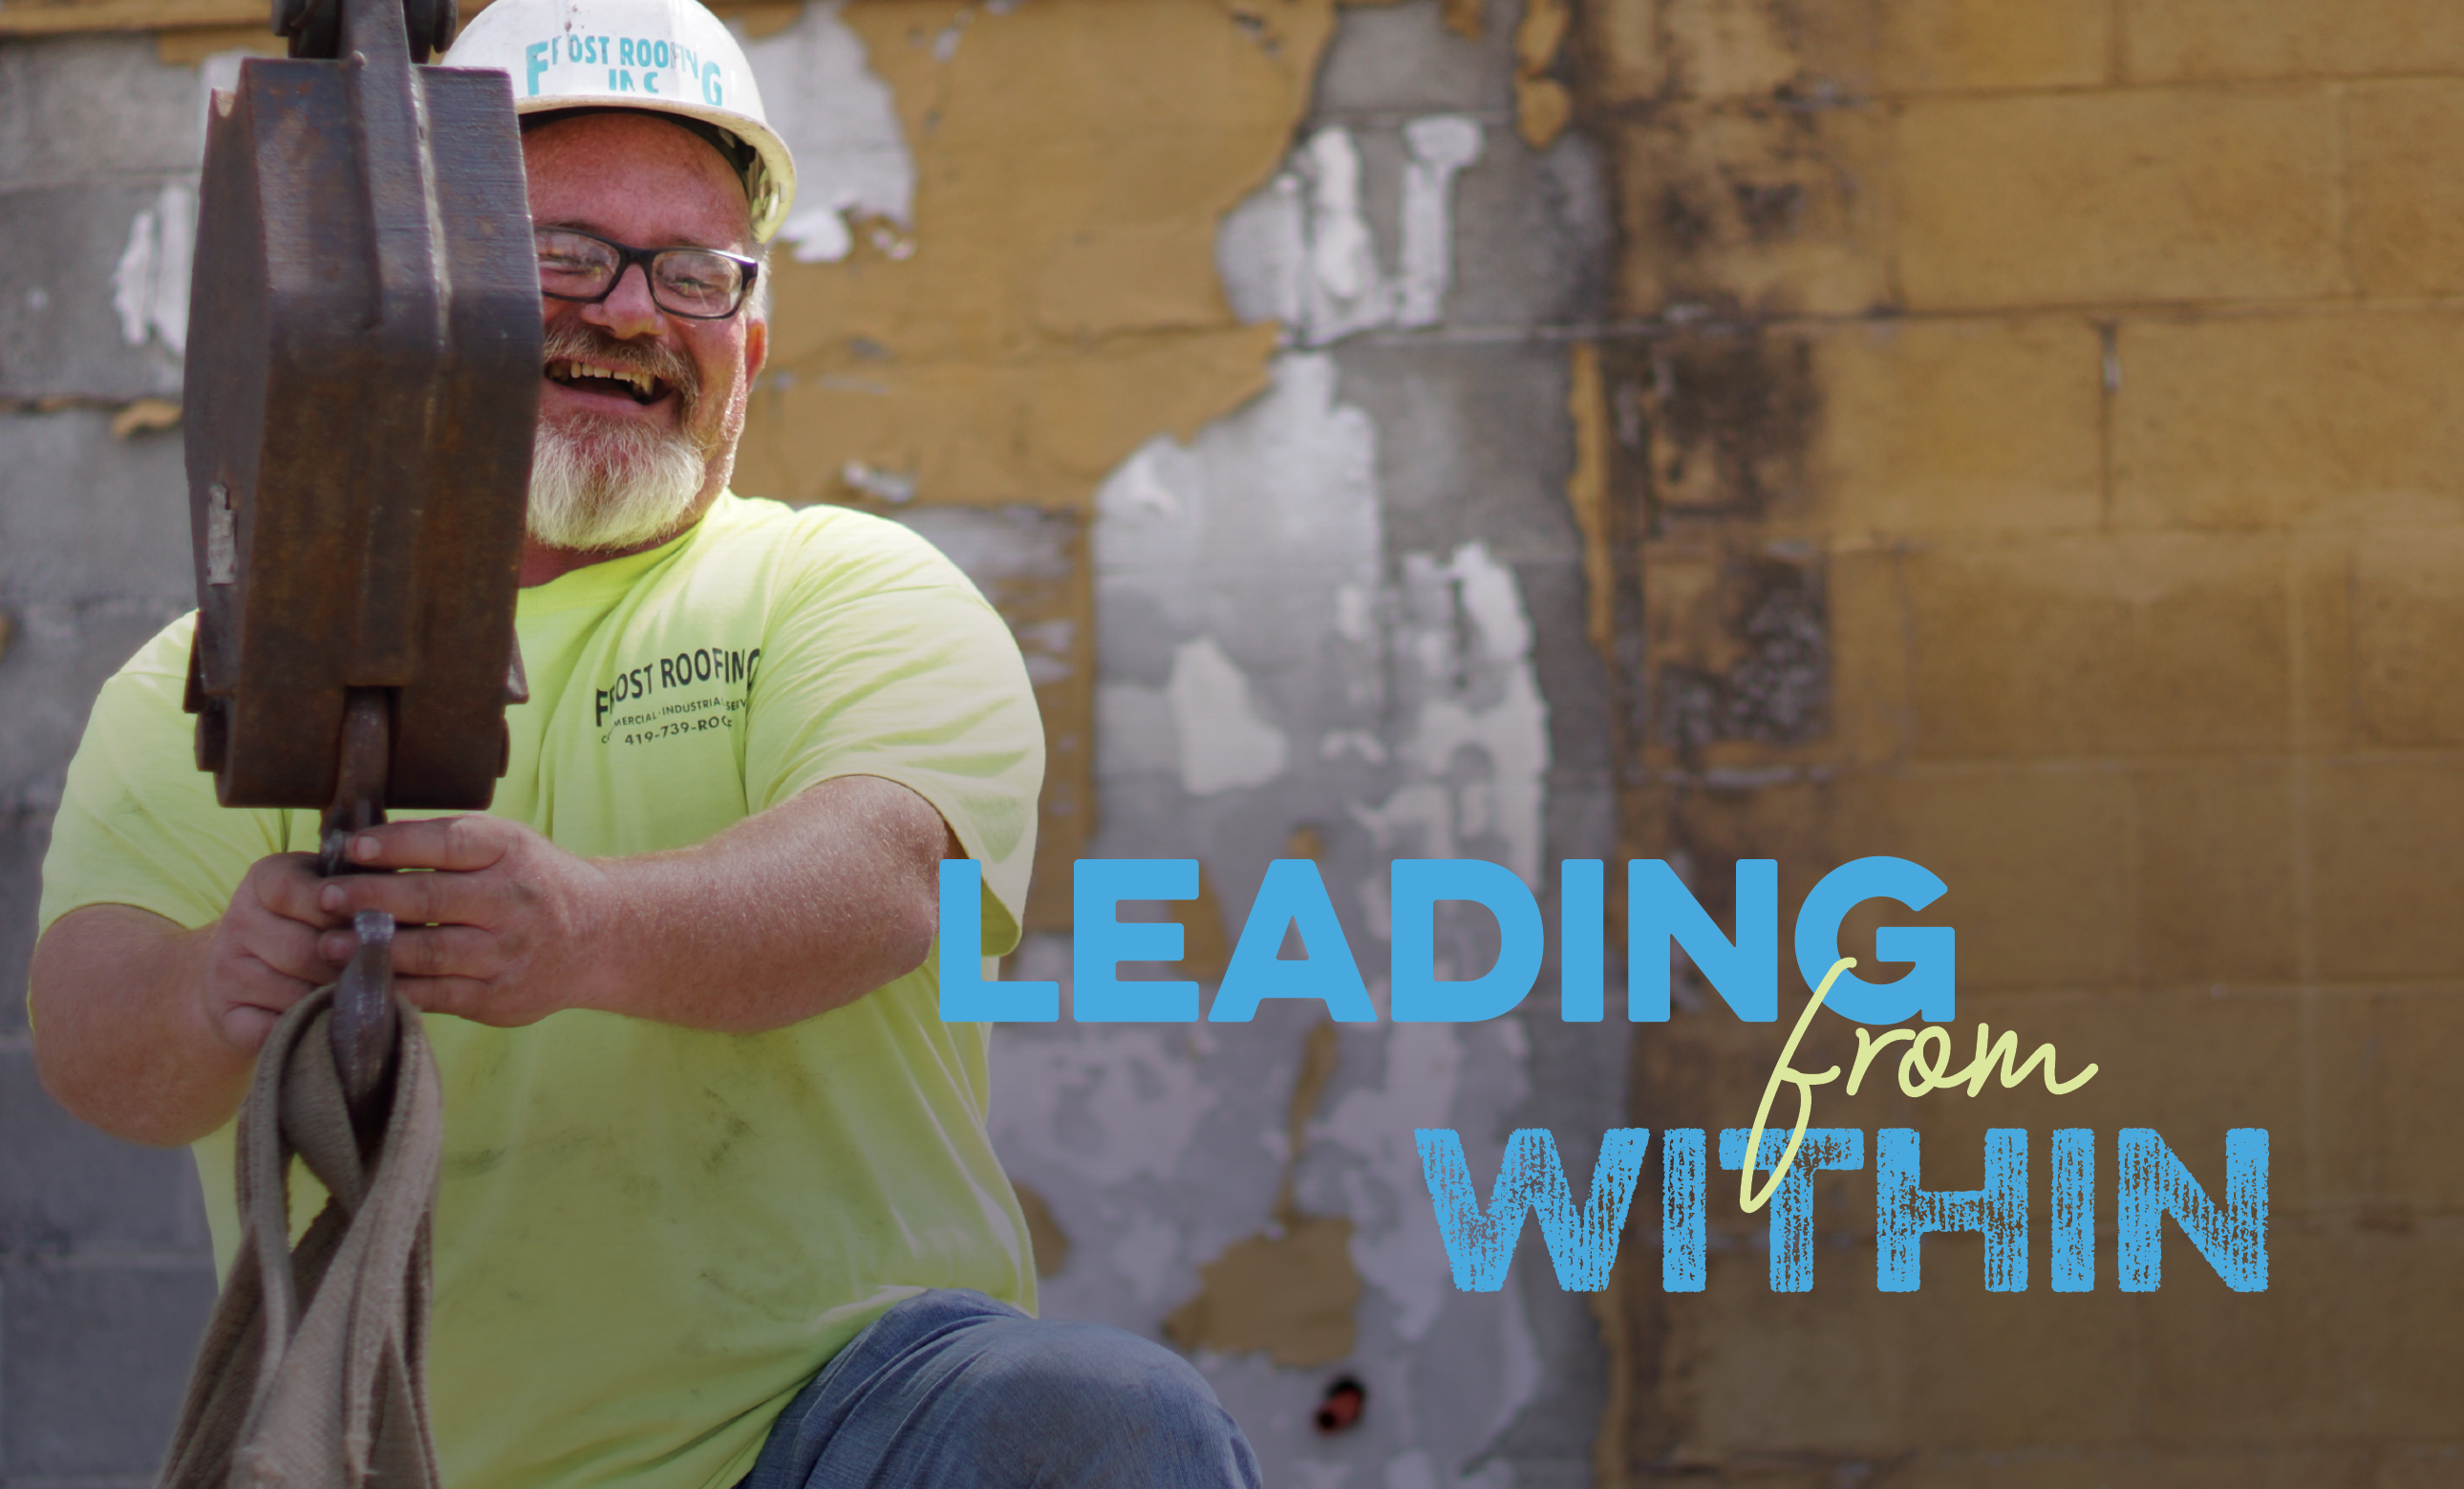 Leading from within - Todd Dunlap wins the prestigious Best of the Best Award